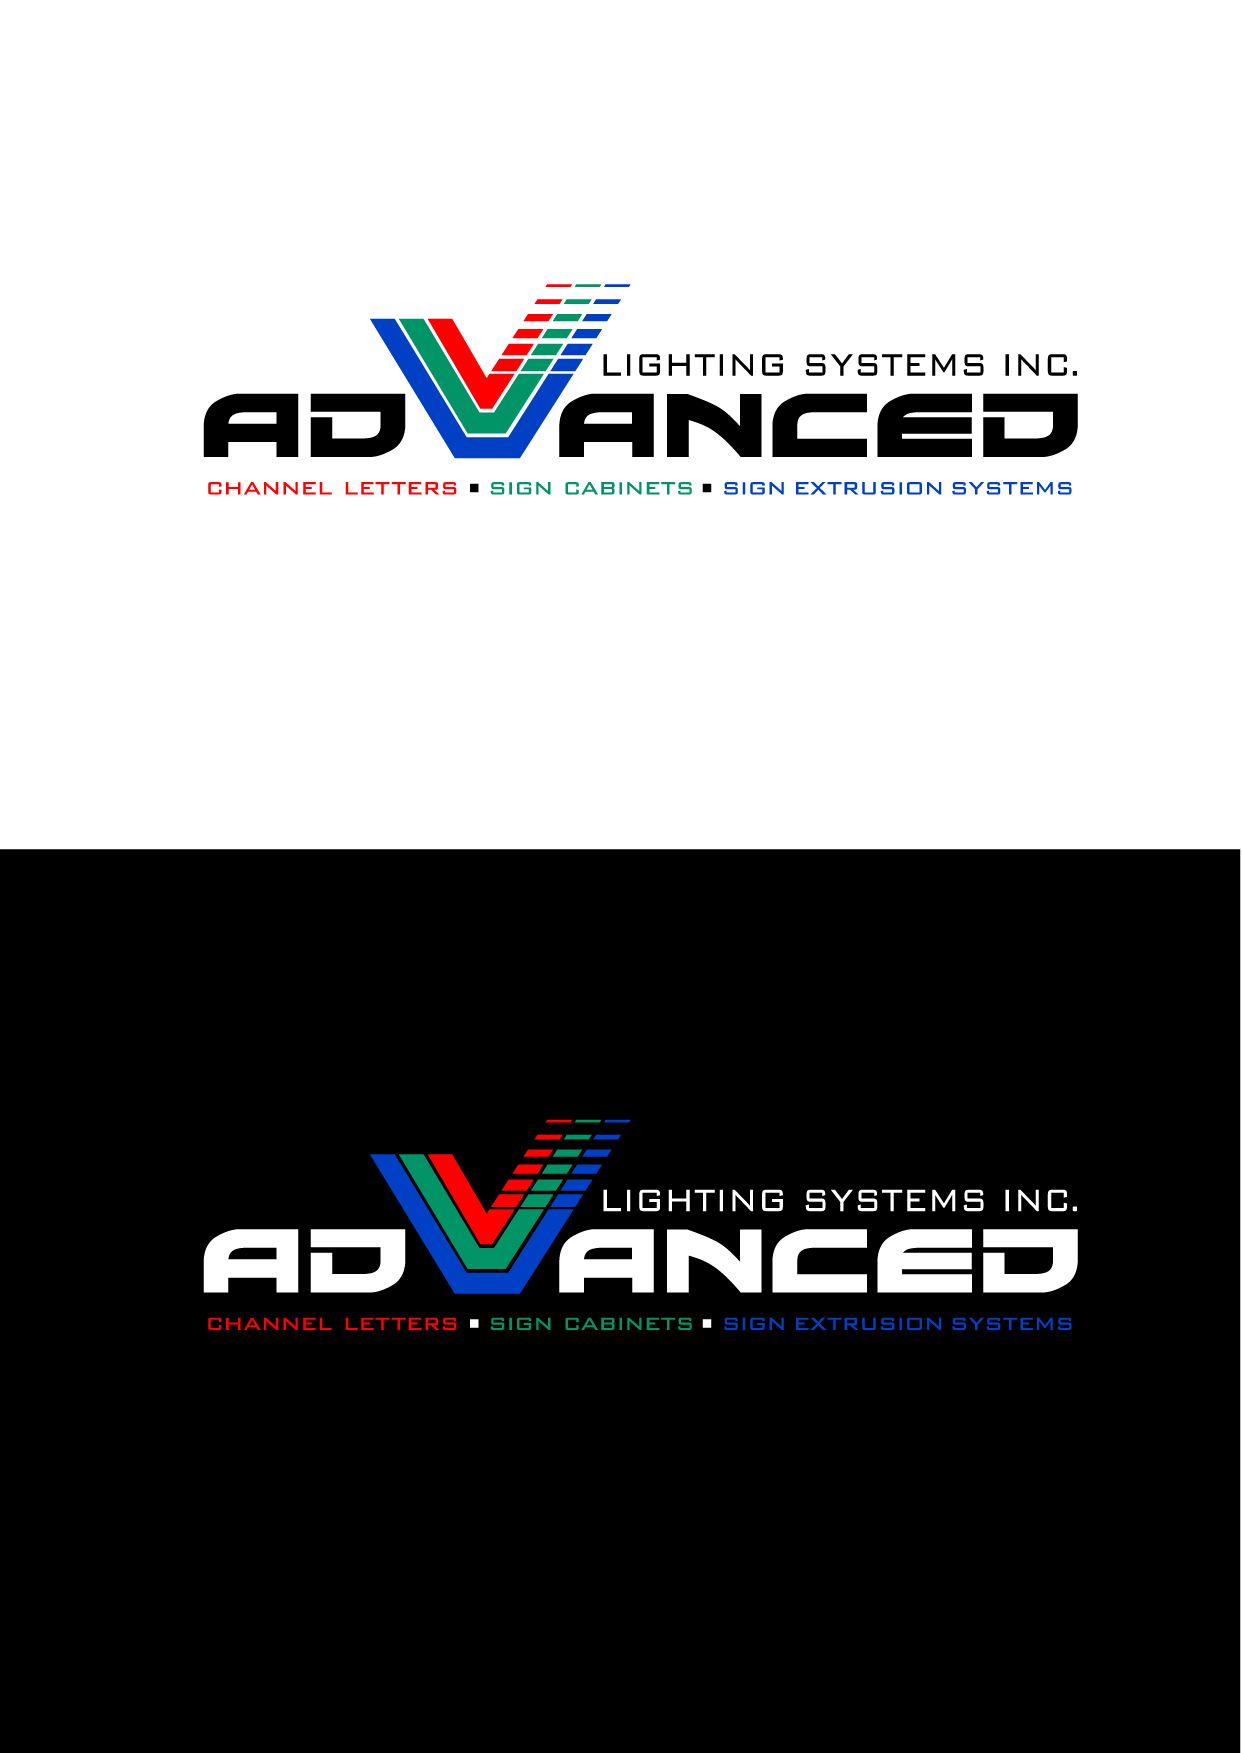 Logo Design by Wilfredo Mendoza - Entry No. 140 in the Logo Design Contest New Logo Design Needed for  Company Advanced Lighting Systems Inc..